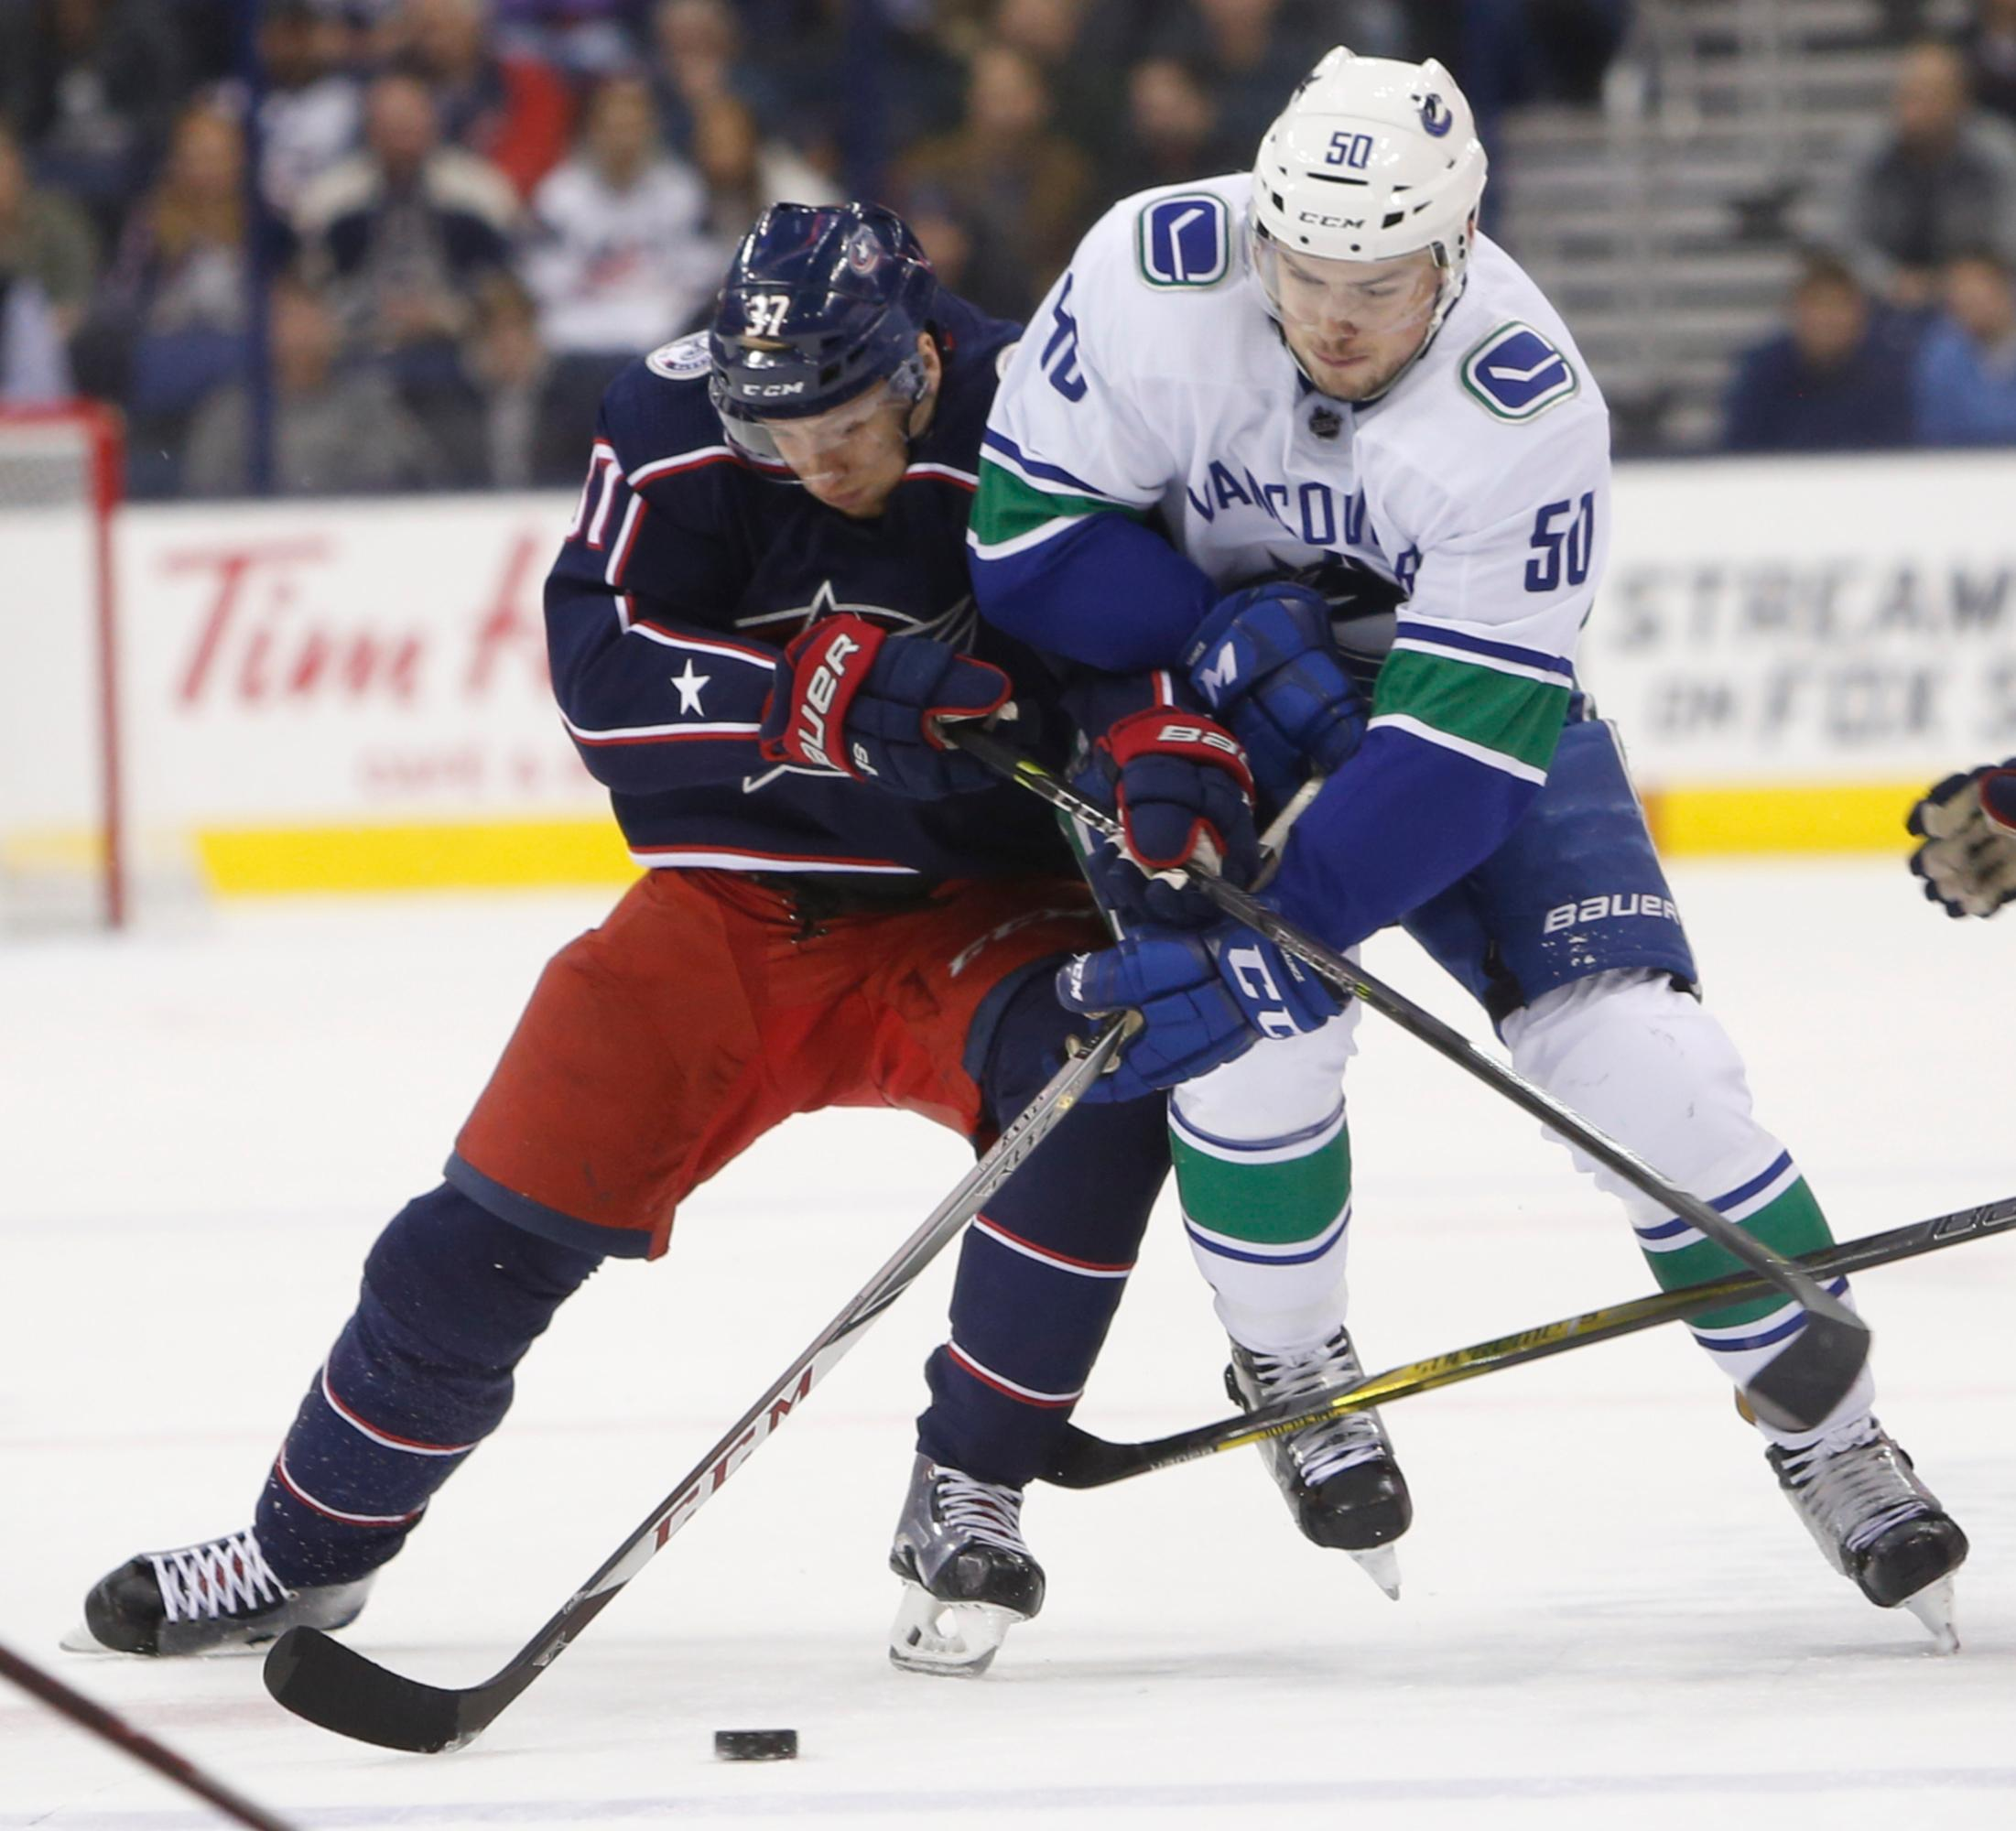 Columbus Blue Jackets' Markus Hannikainen, left, of Finland, and Vancouver Canucks' Brendan Gaunce fight for the puck during the first period of an NHL hockey game Friday, Jan. 12, 2018, in Columbus, Ohio. (AP Photo/Jay LaPrete)